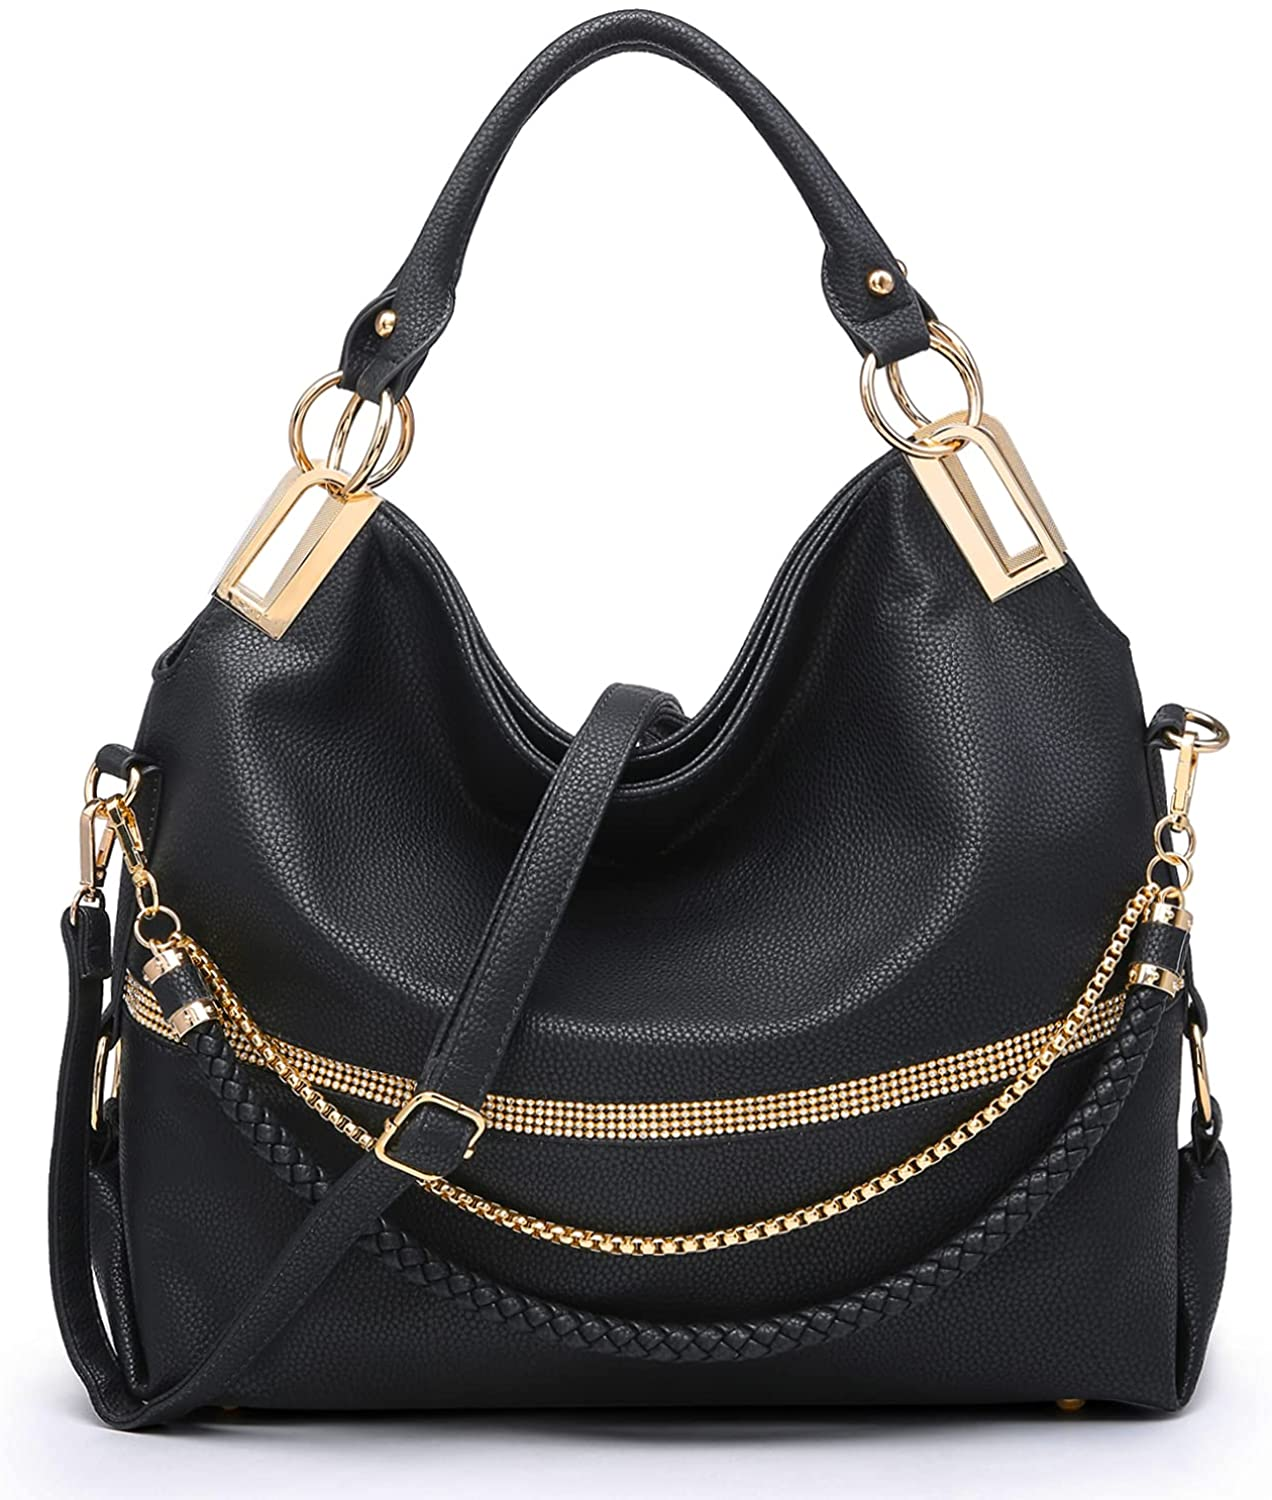 Dasein Hobo Bags for Women Soft Faux Leather Purses and Handbags Large Hobo Purse Shoulder Bag with Rhinestones